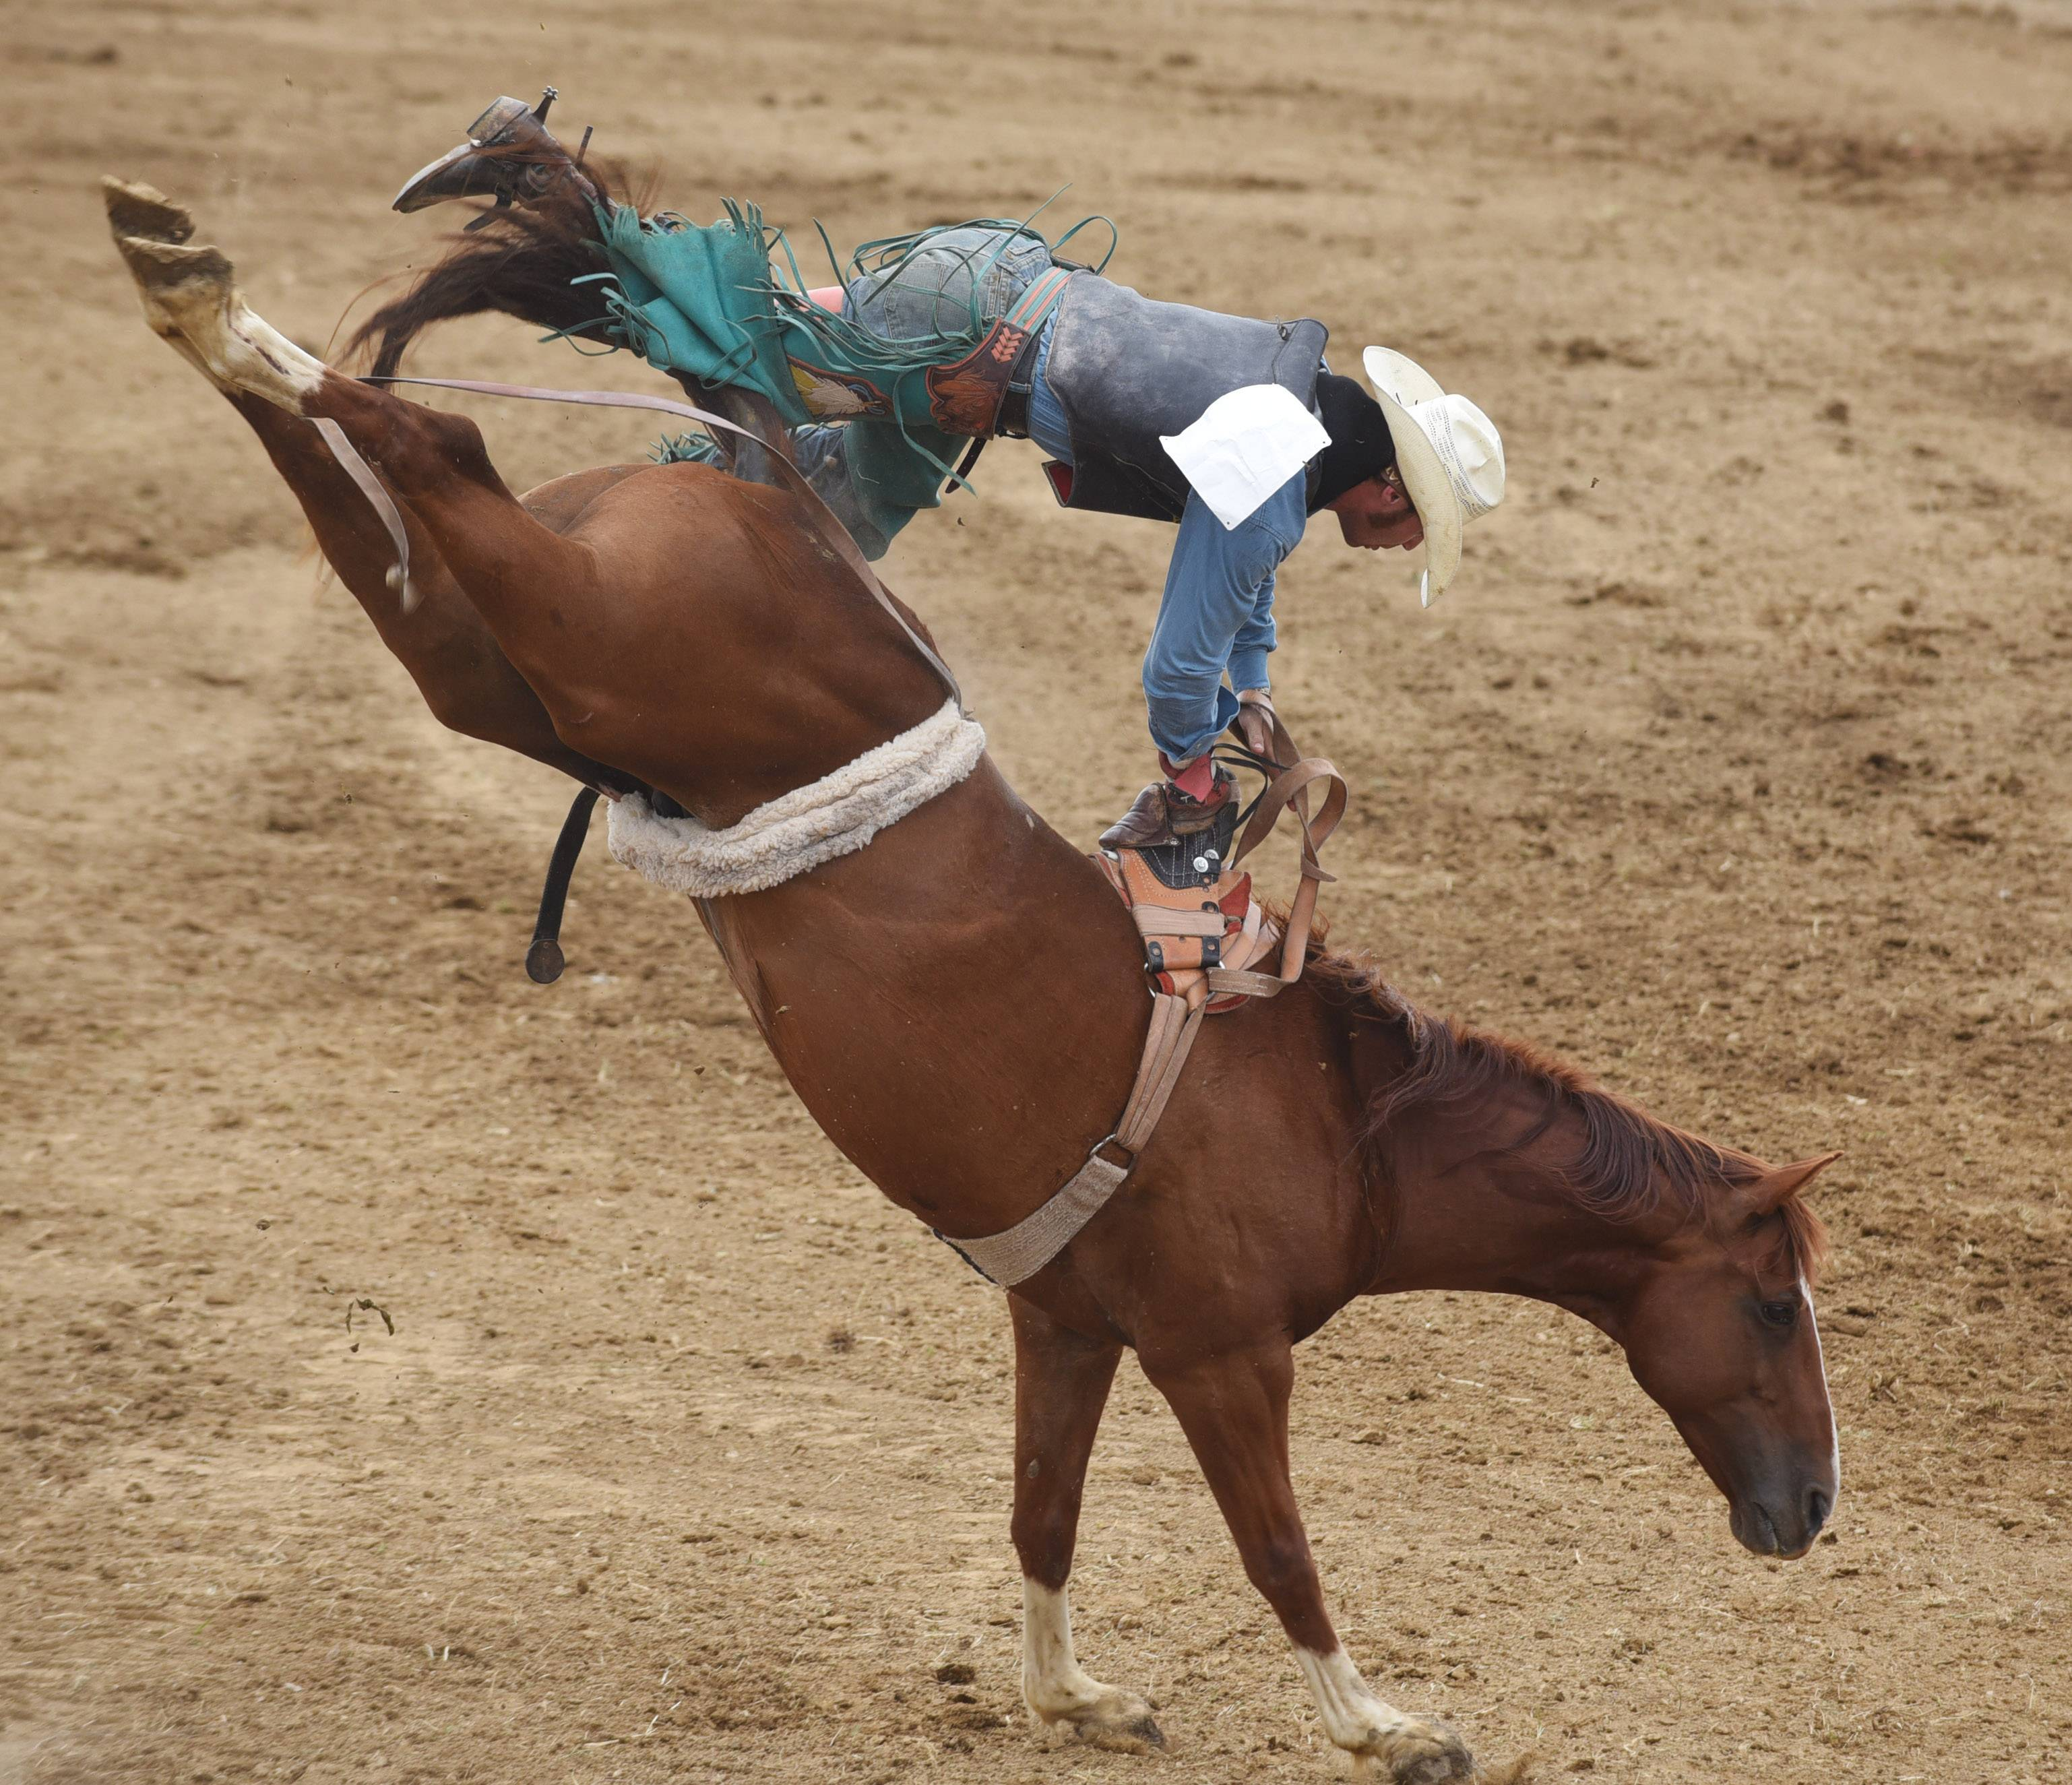 The Wauconda IPRA Championship Rodeo returns this weekend.